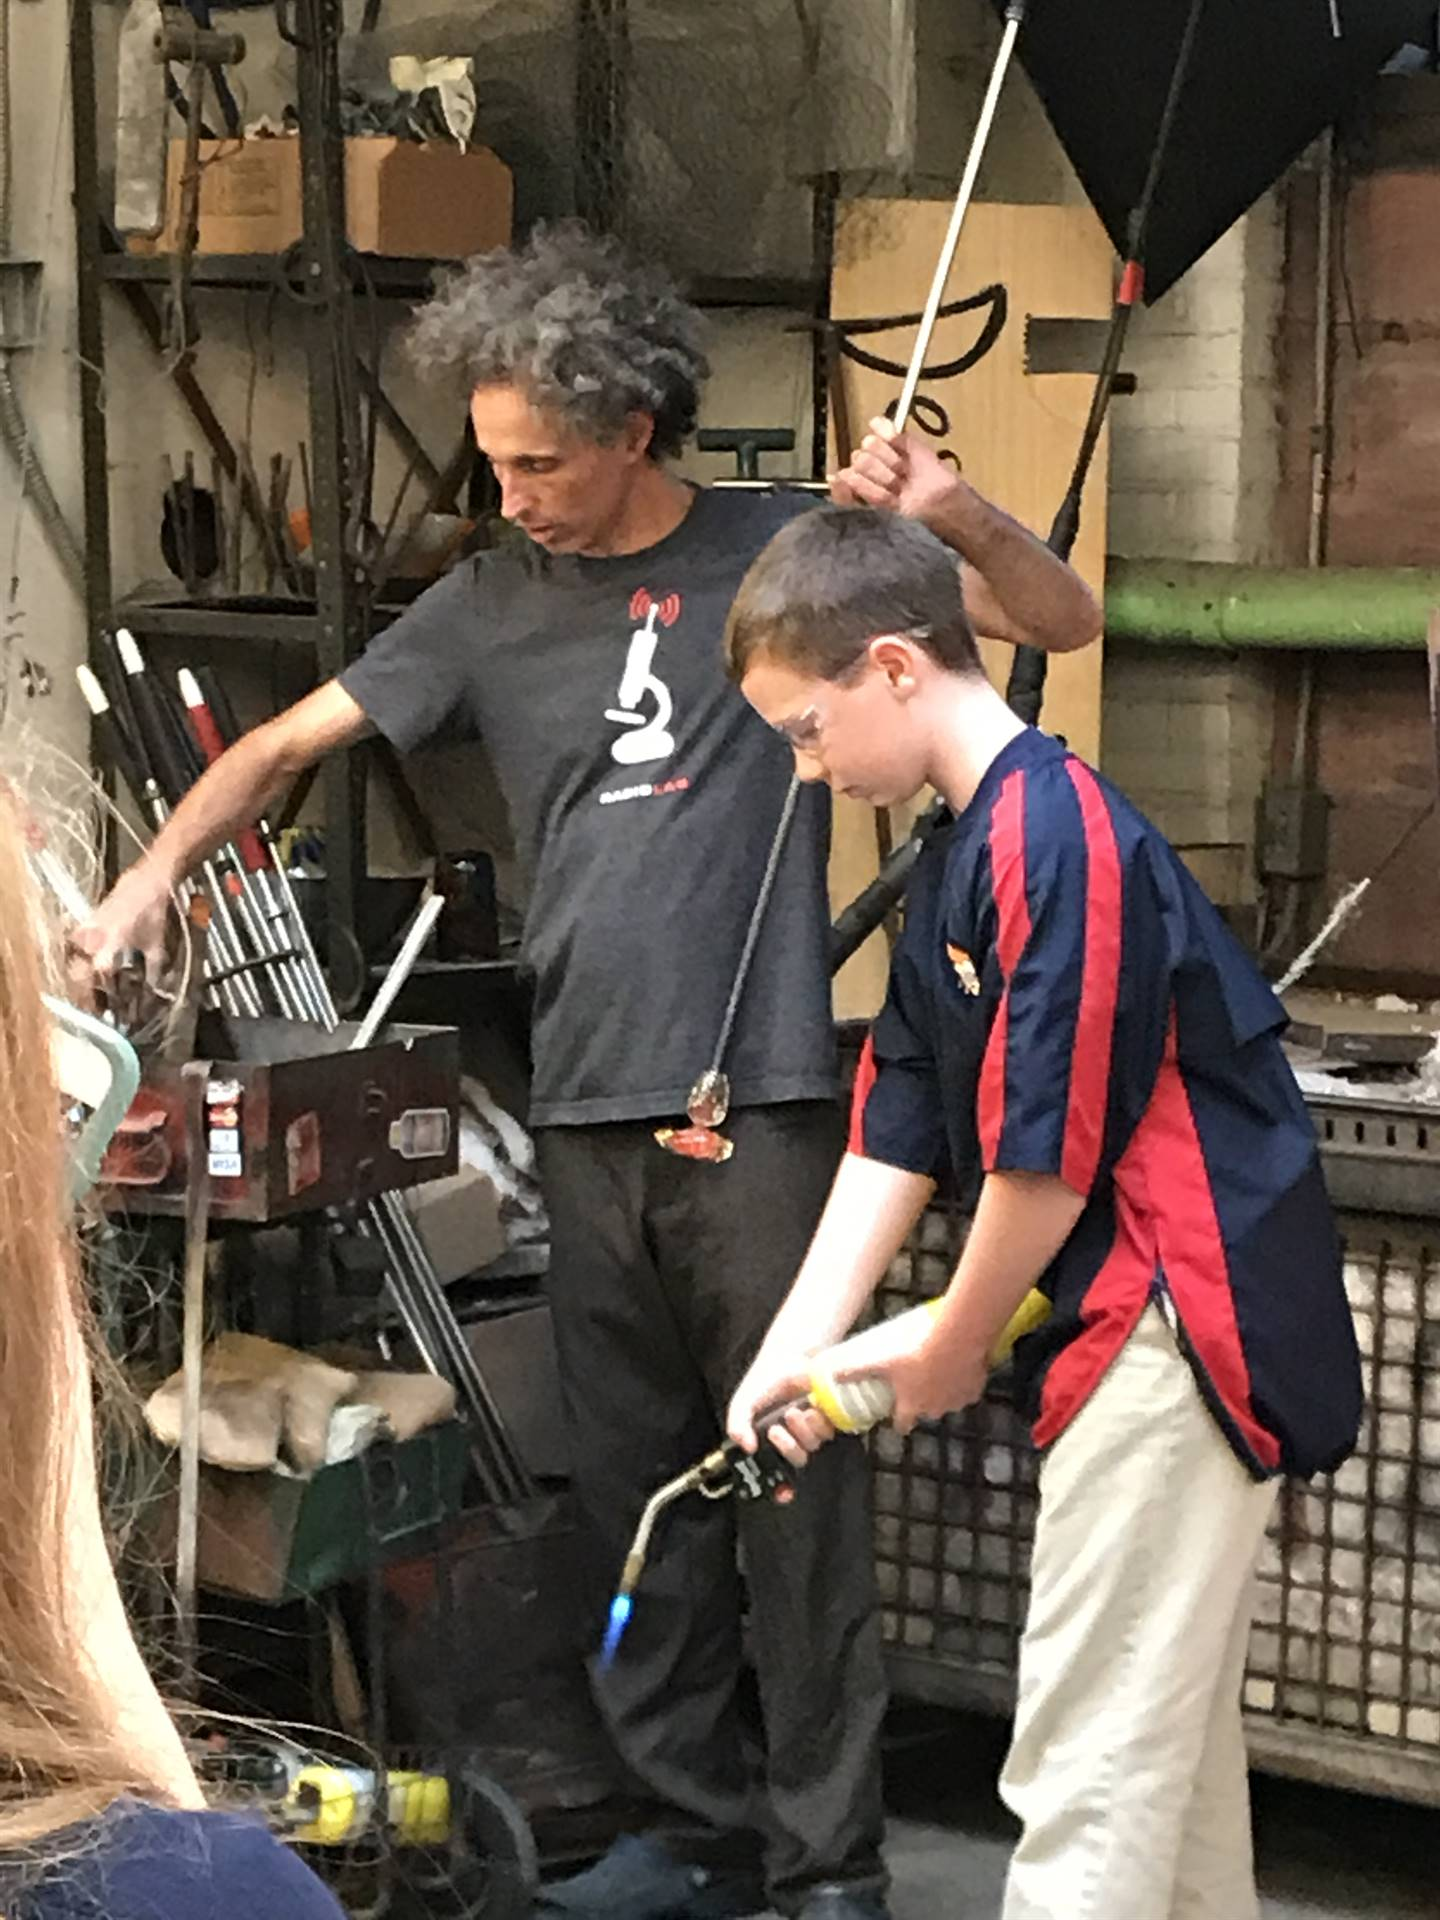 Grade 7 student participates in a glass blowing demonstration